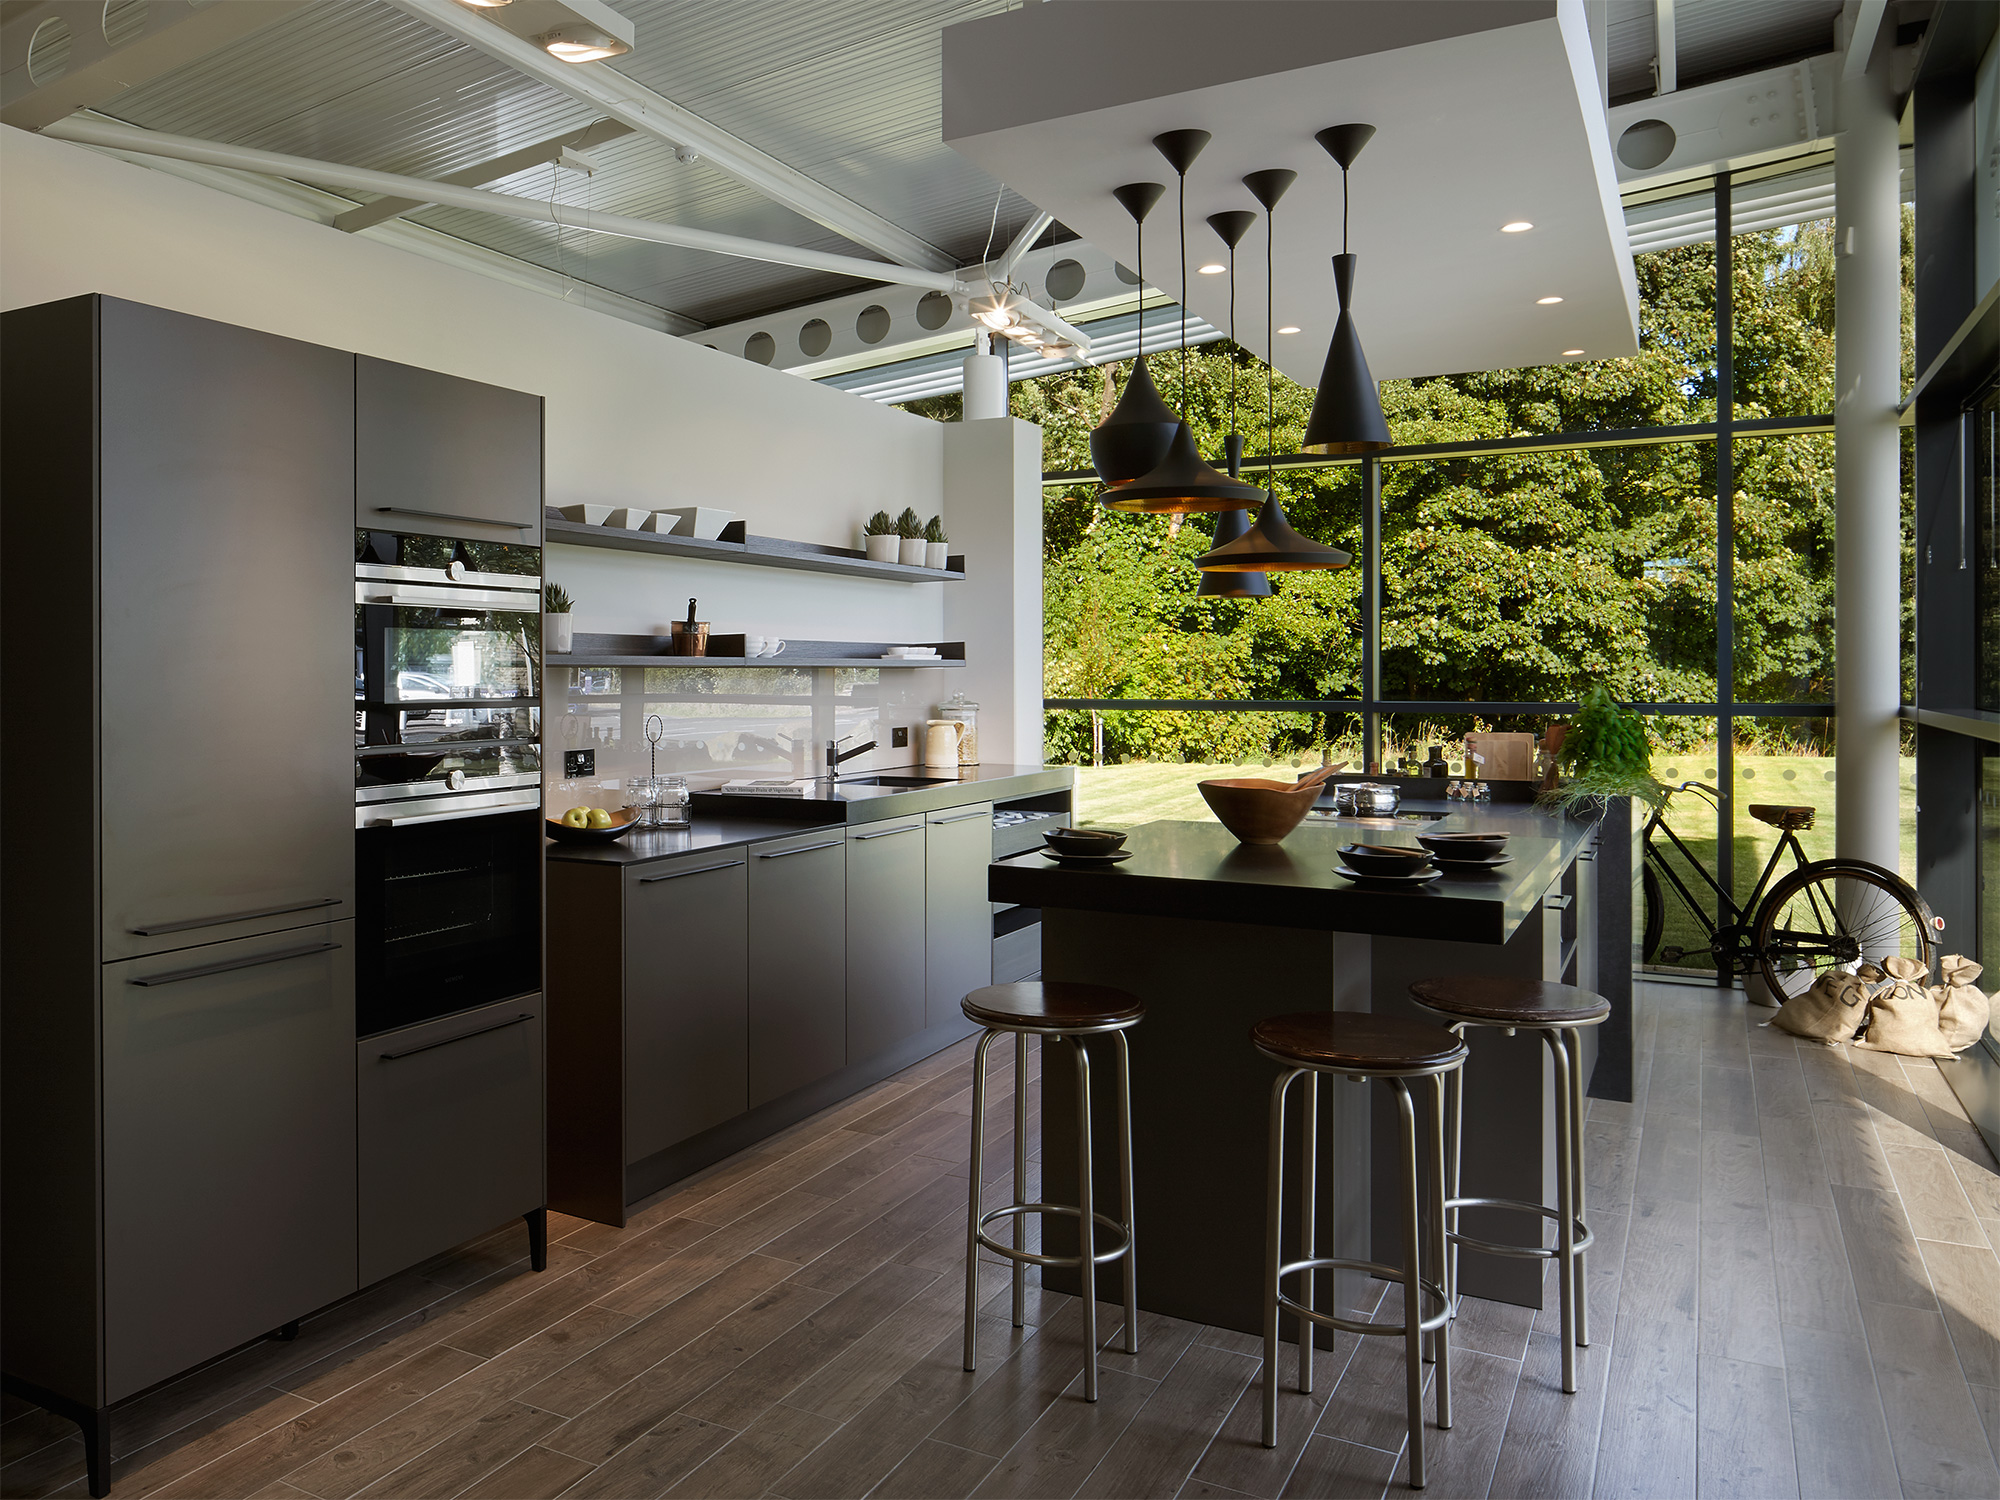 Siematic kitchens for Siematic kitchen design